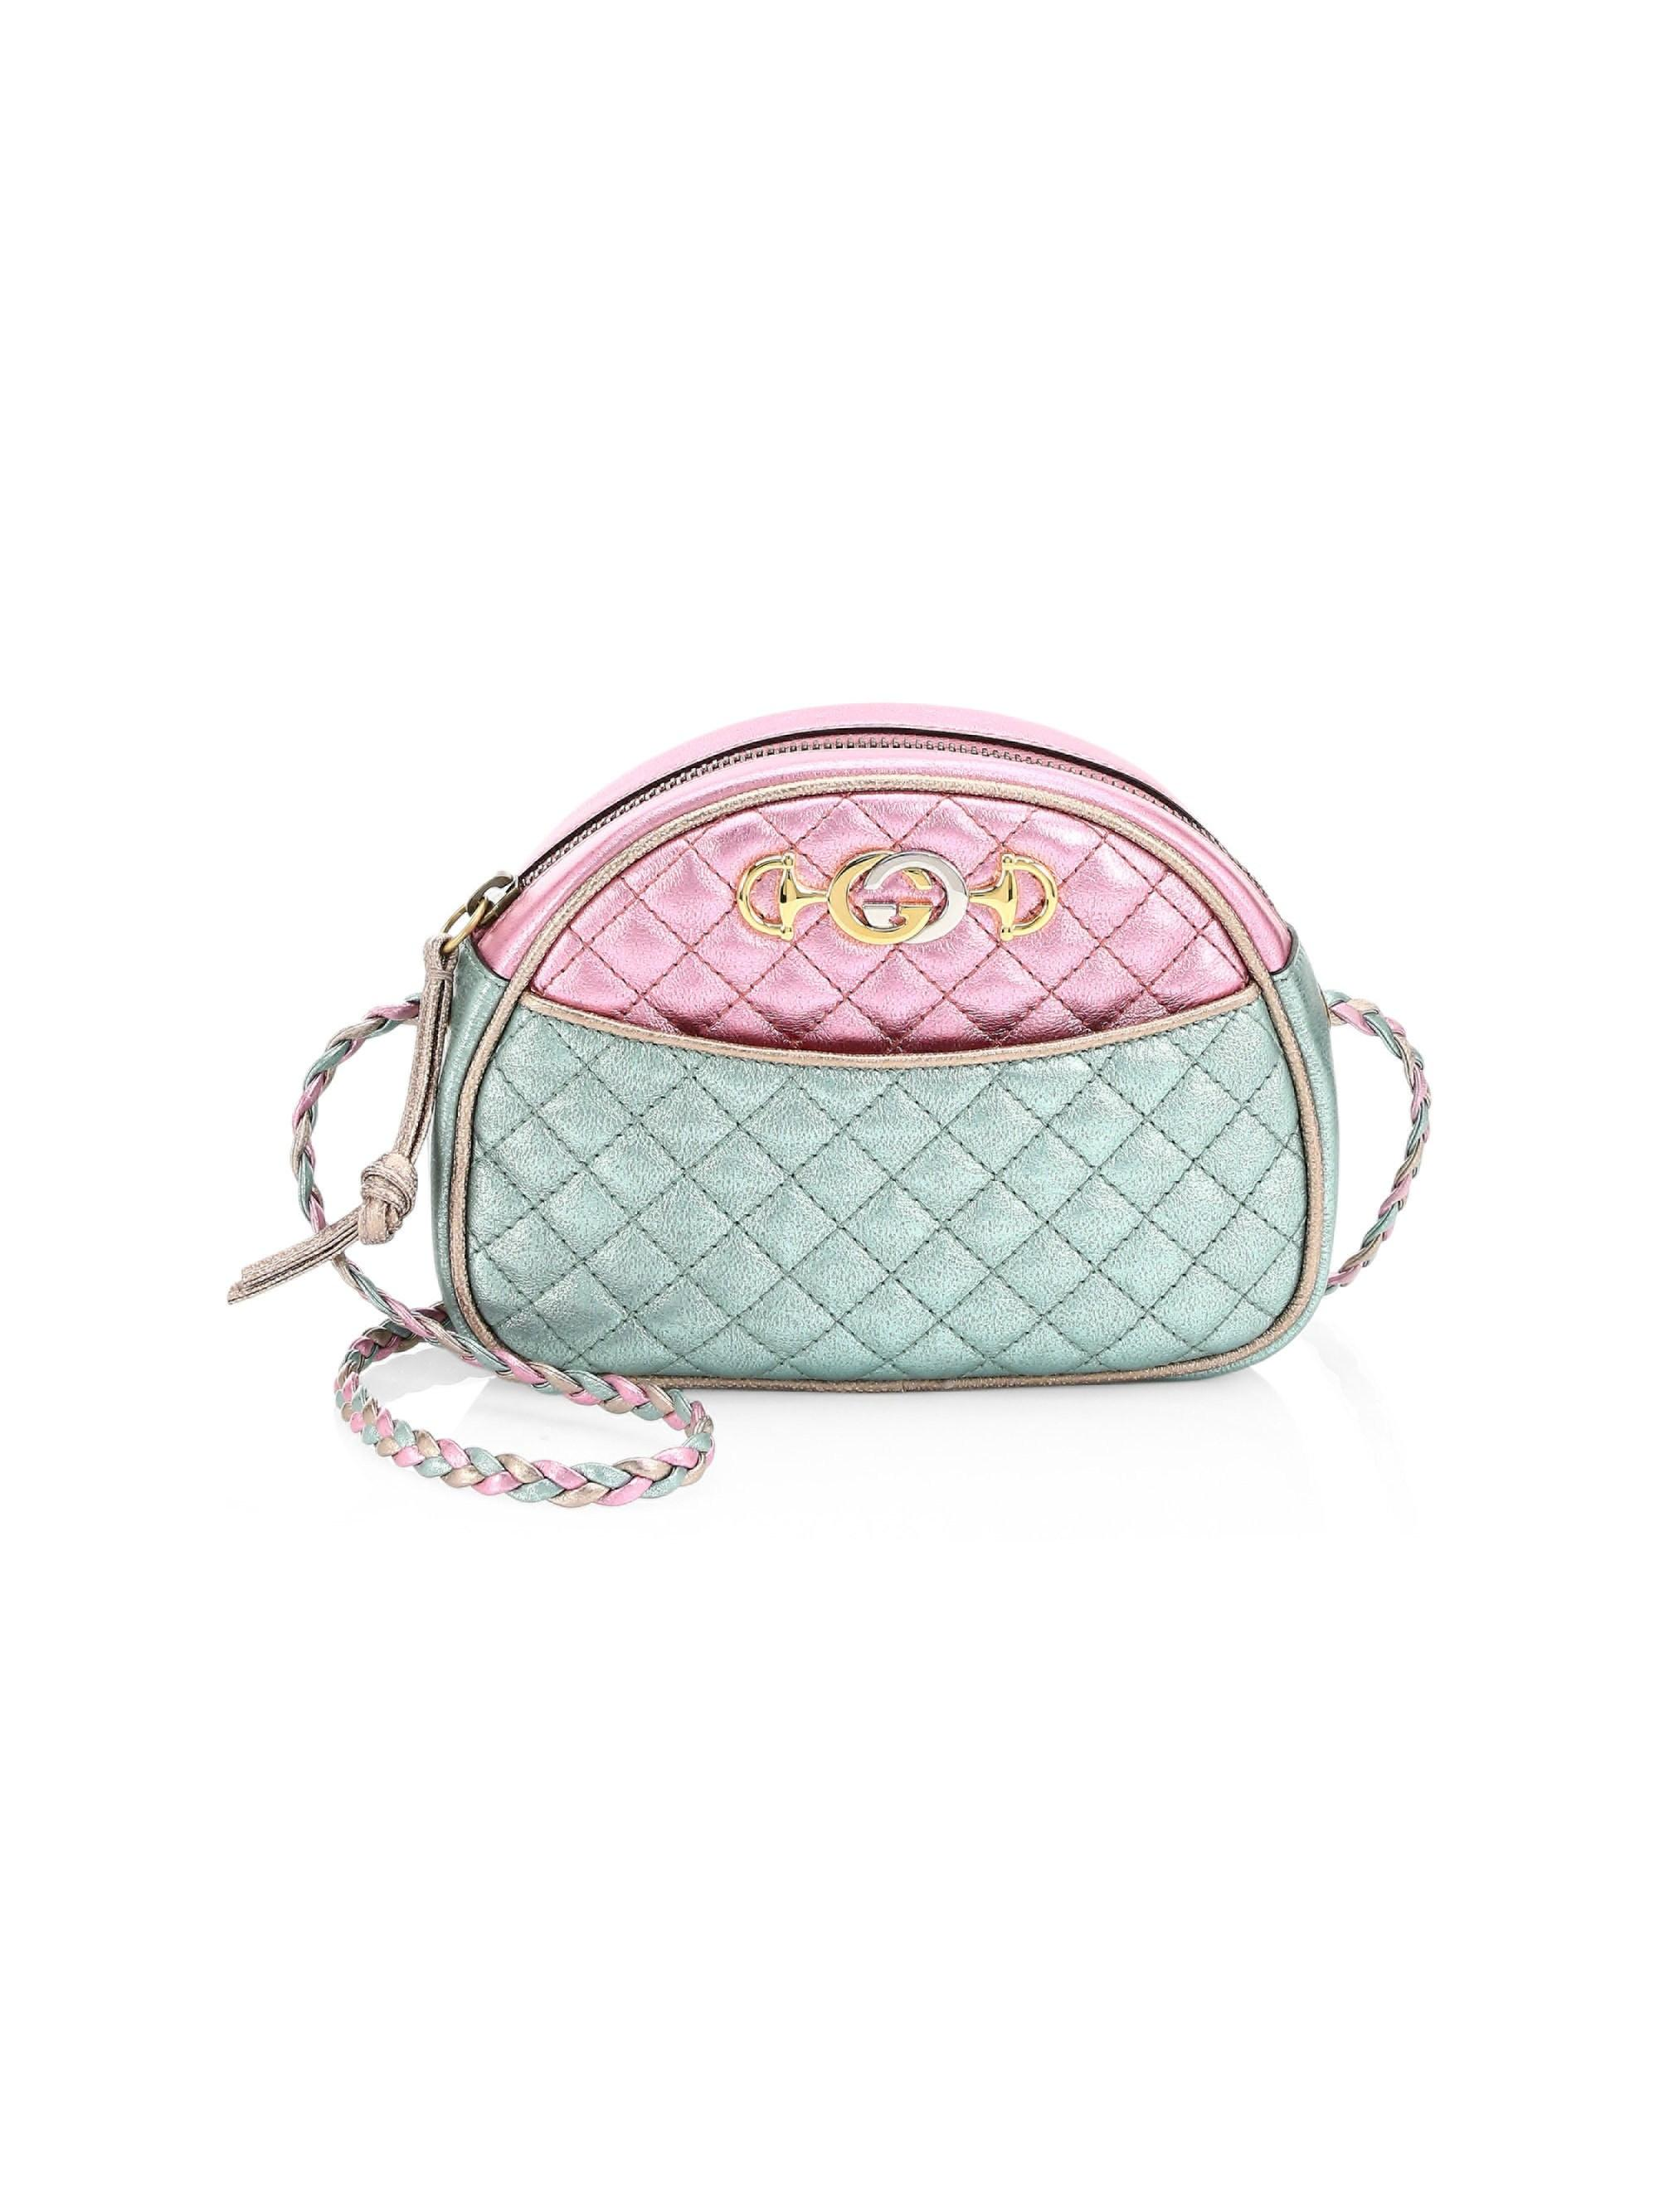 9aea71bcb67 Gucci. Women s Pink Trapuntata Mini Quilted Metallic Leather Crossbody Bag